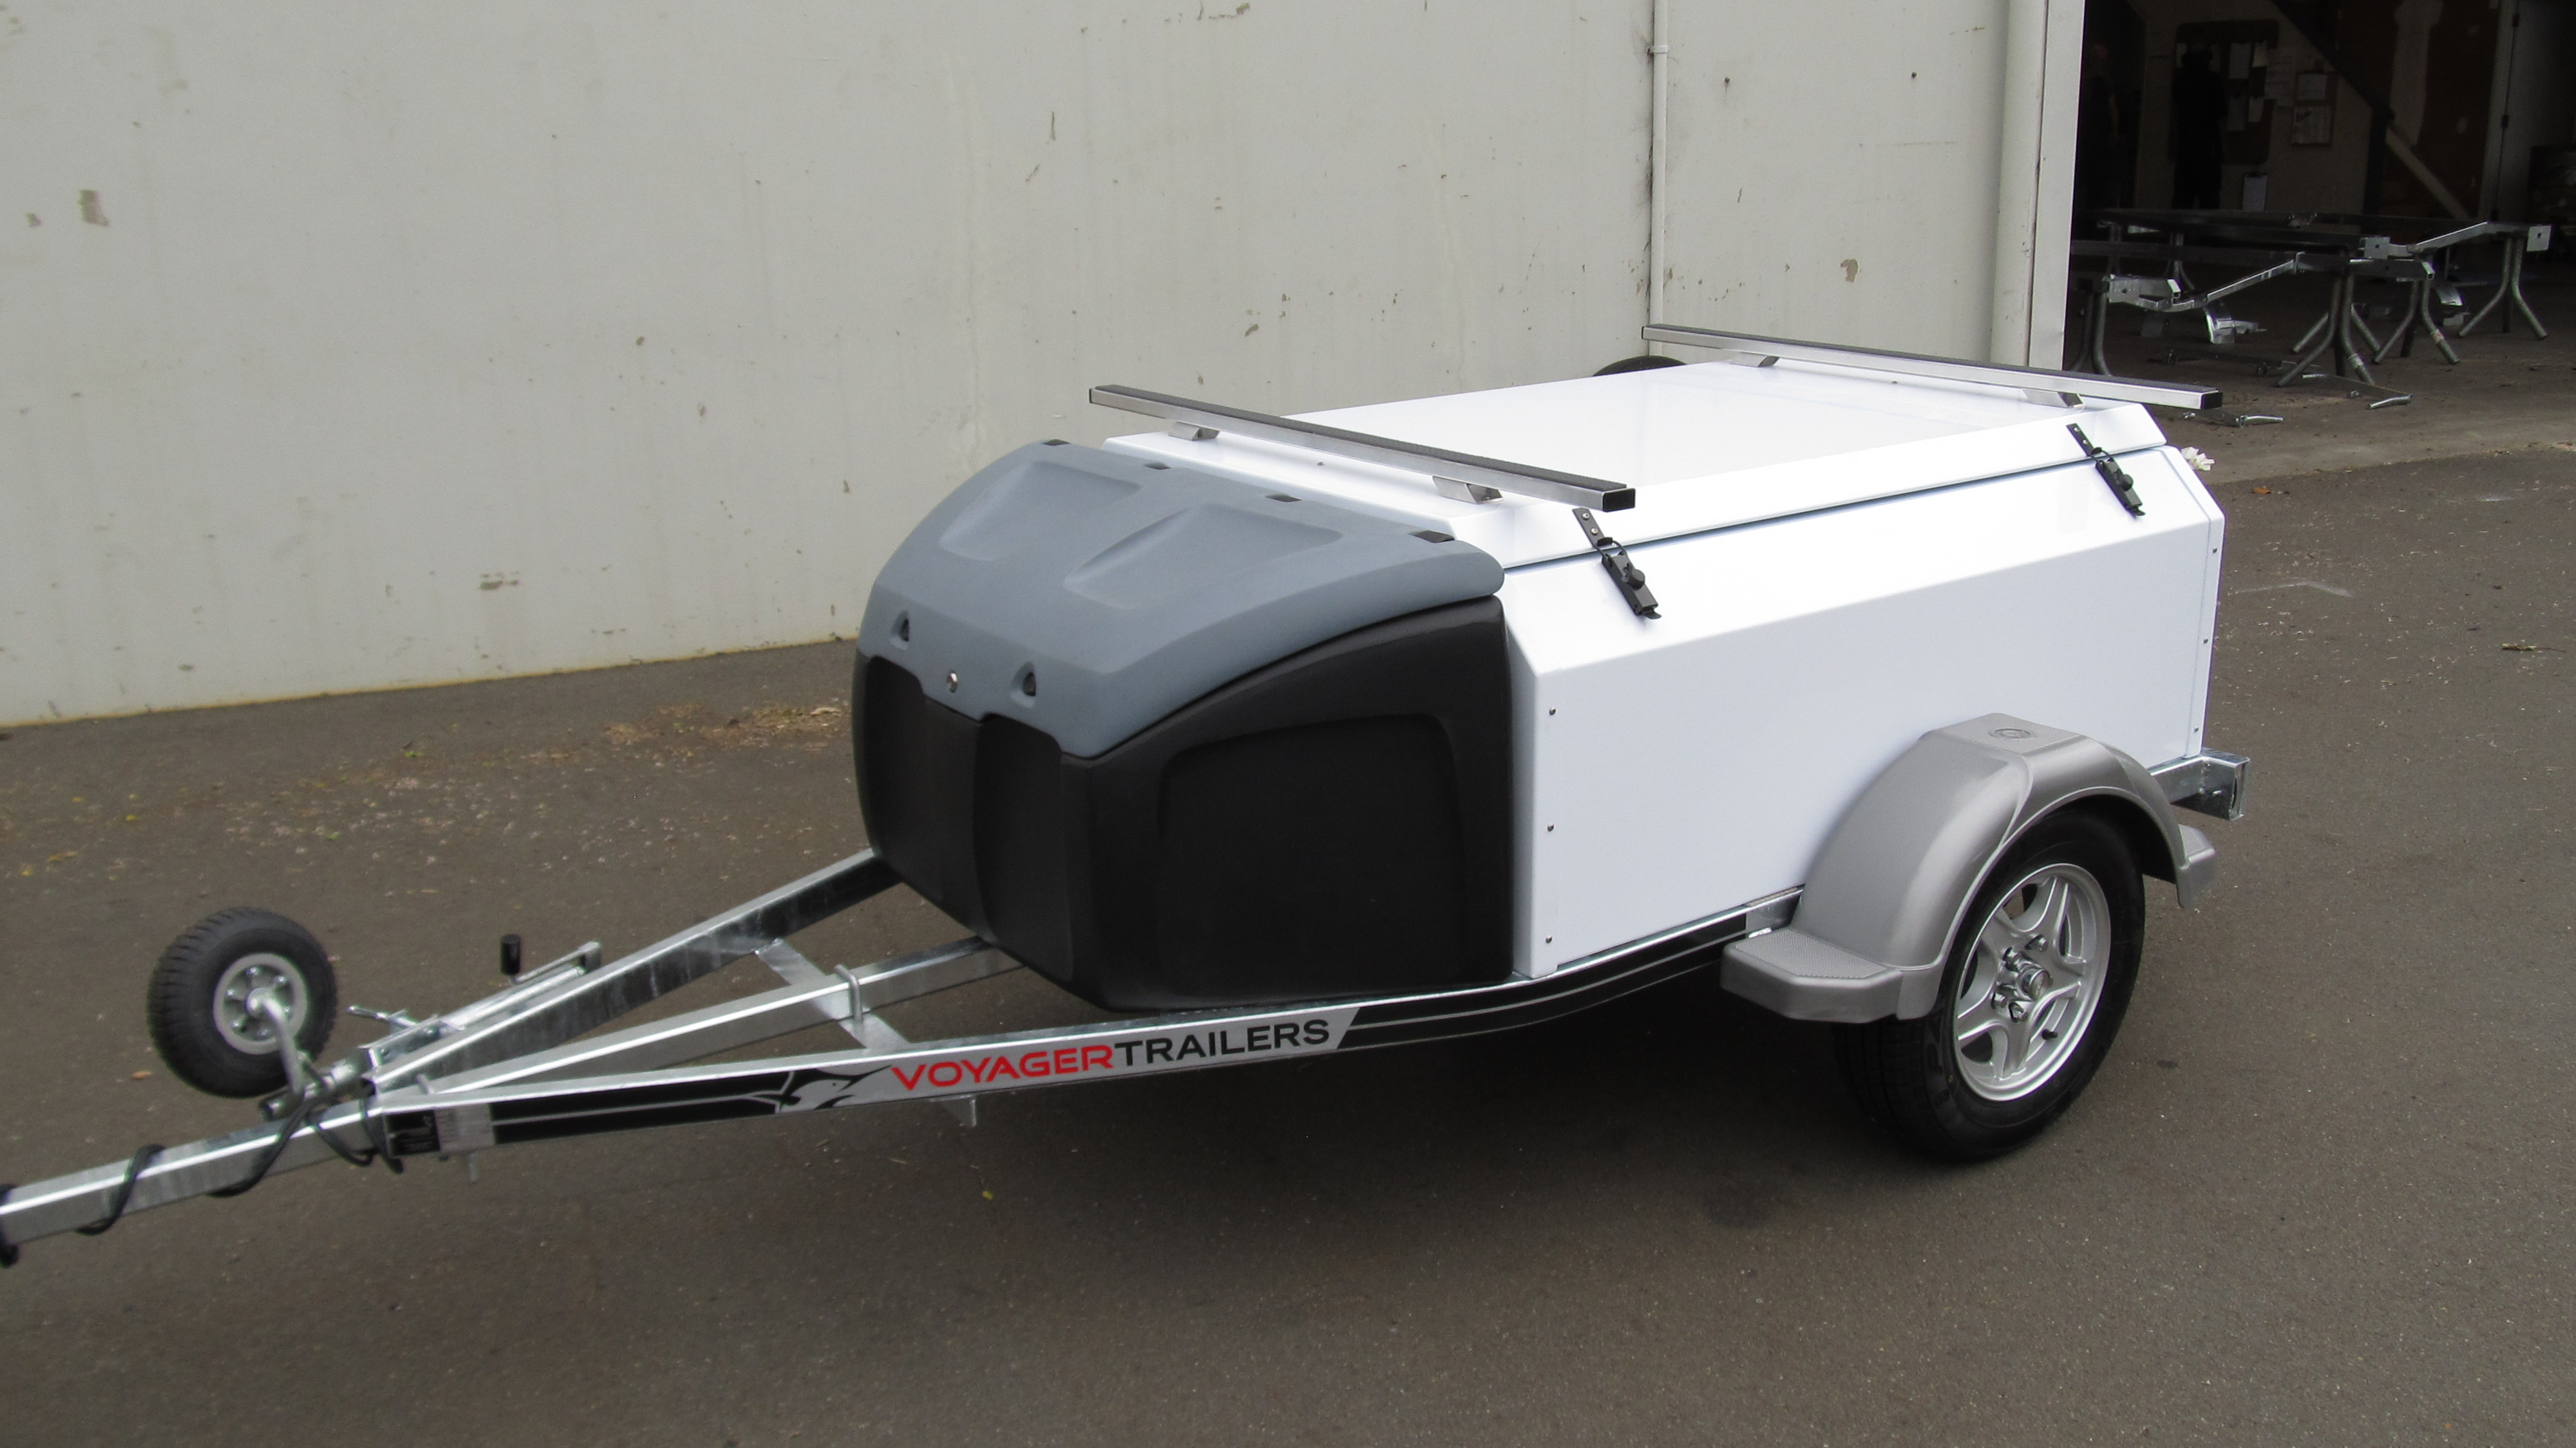 Luggage Trailers Voyager Boat Trailers For Sale Nz Ph